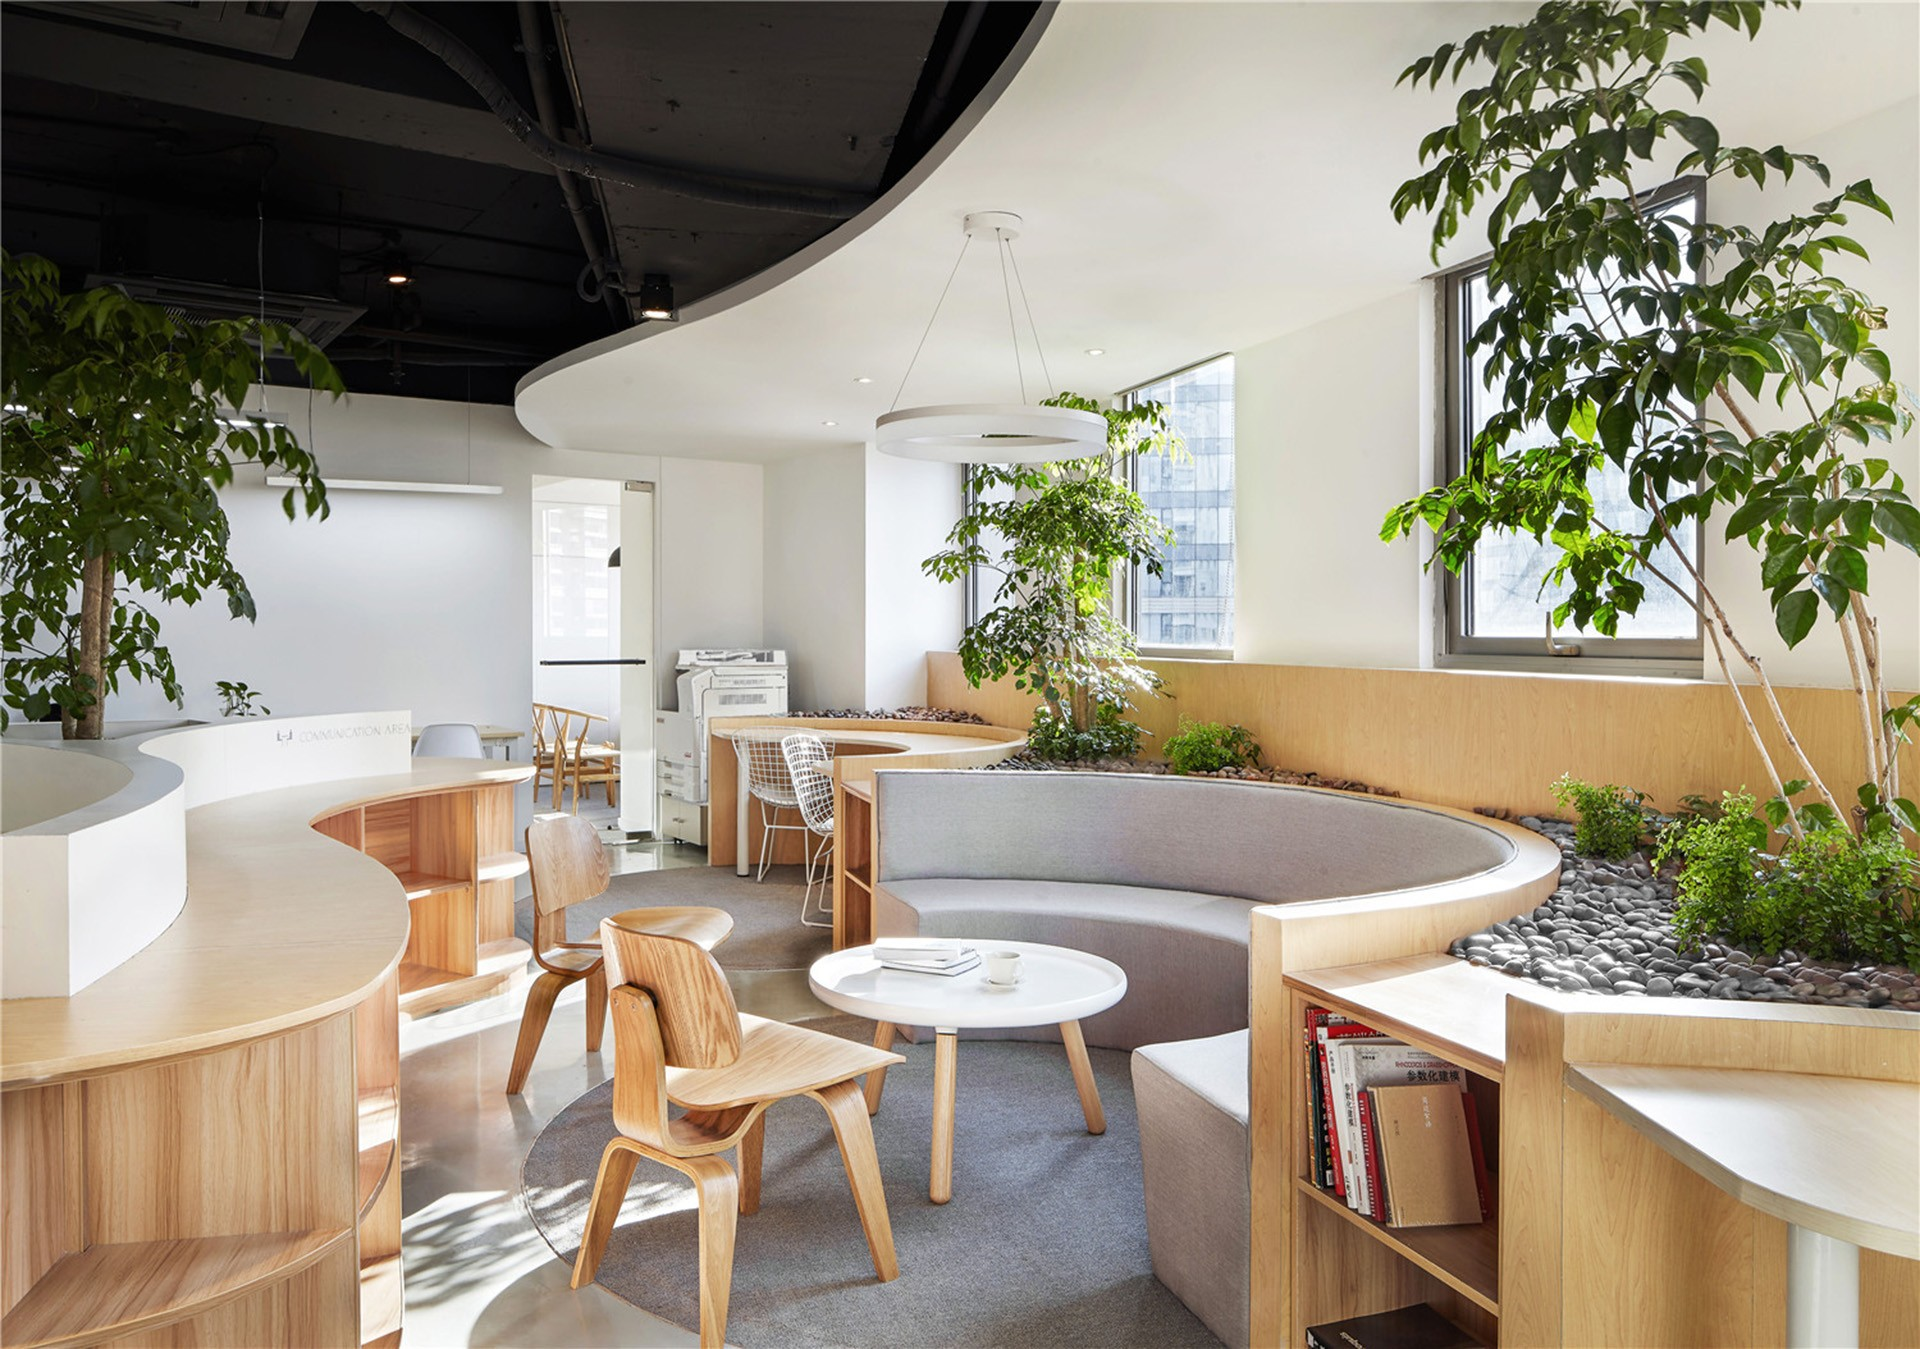 Celebrating Nature An Office By Muxin Design And Research